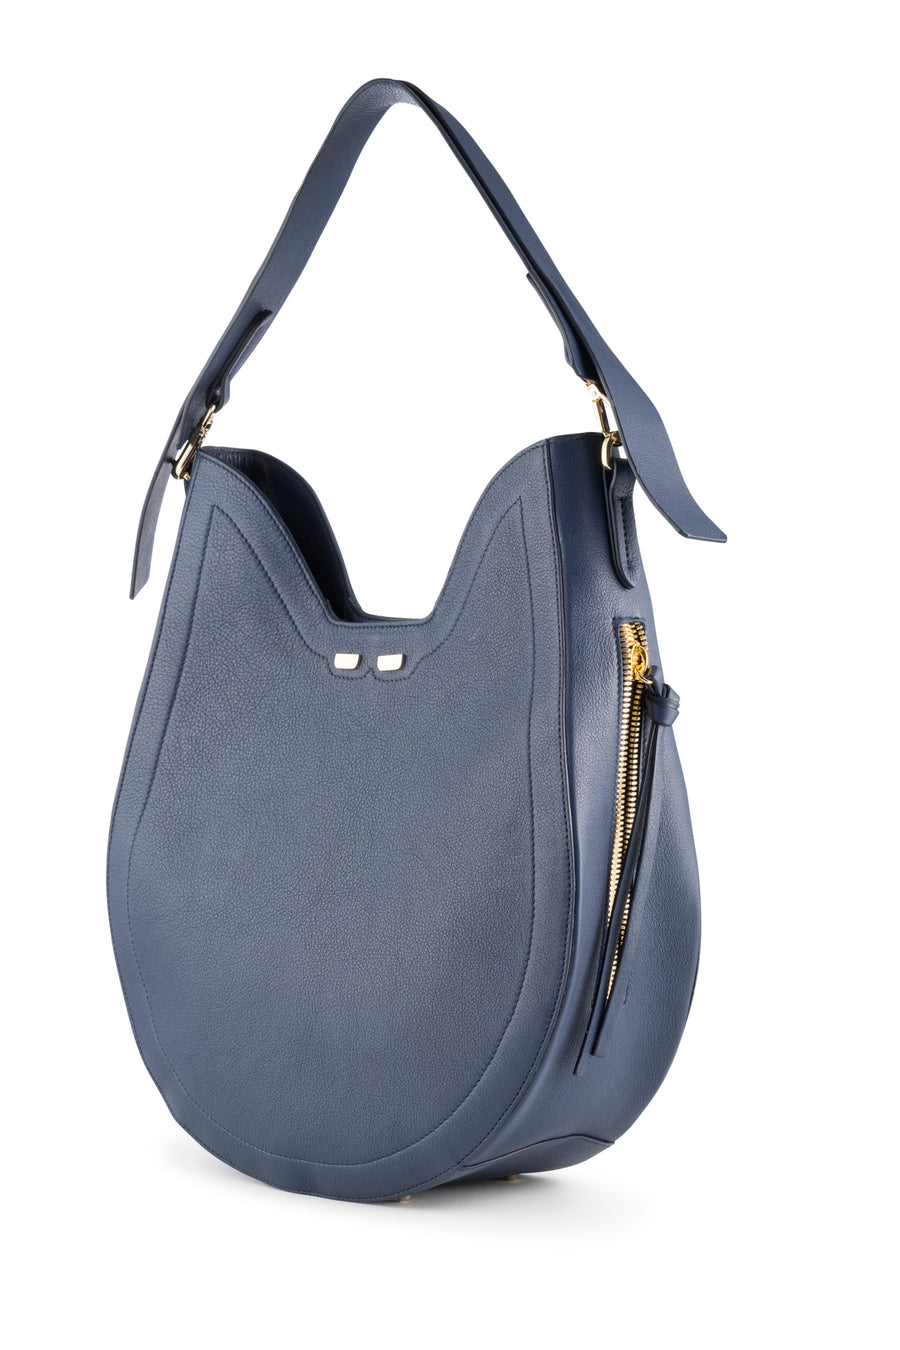 PRE-FALL Denim Henry James Hobo - BENE Handbags